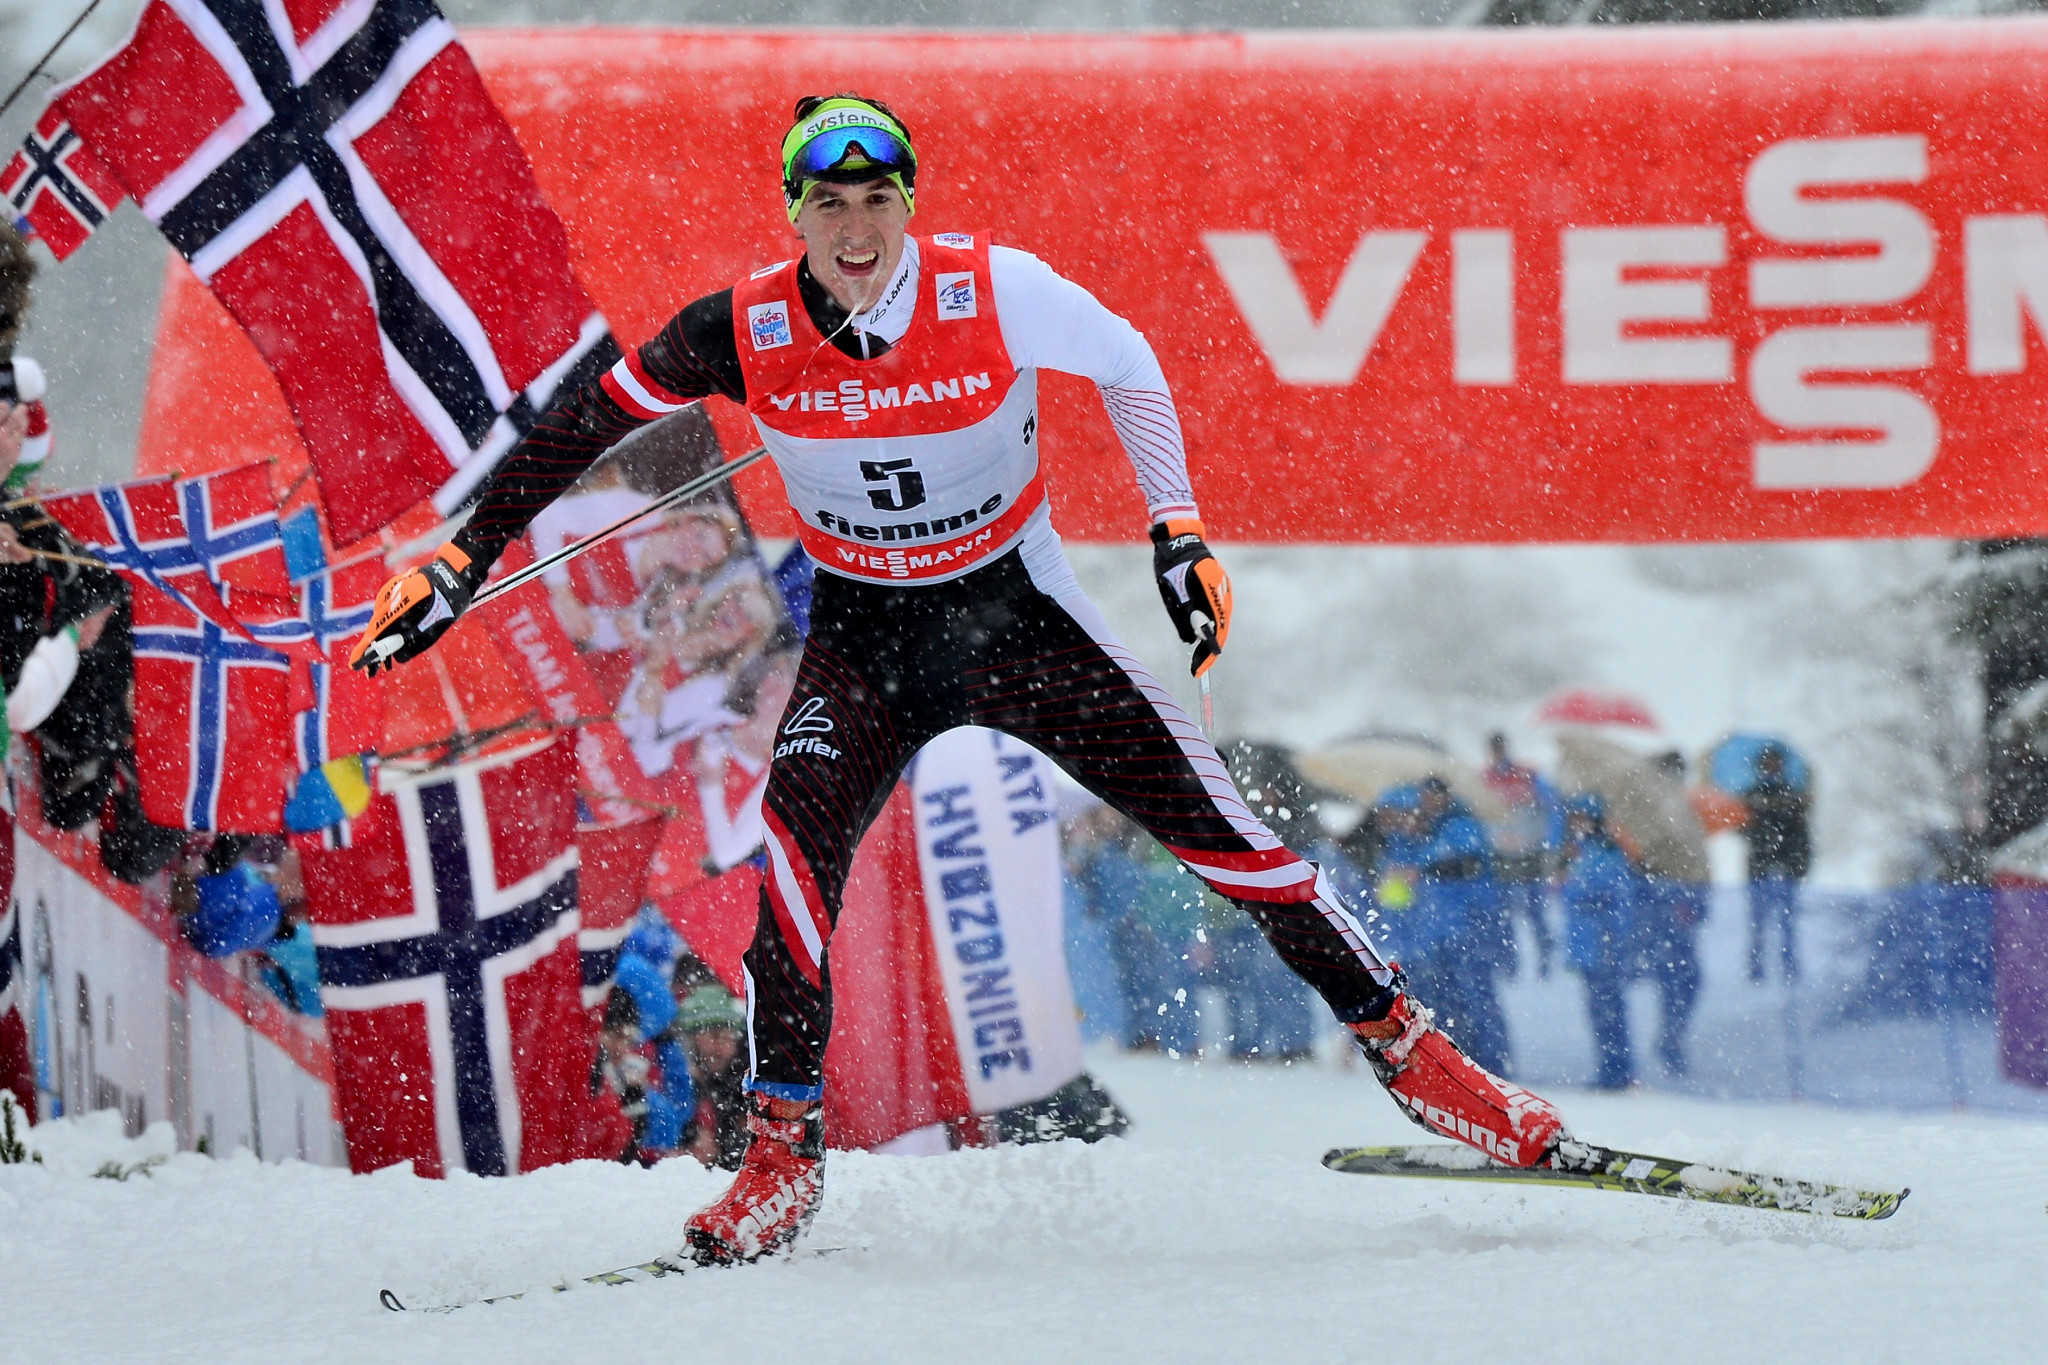 Austrian cross-country skier Johannes Dürr, who admitted to recent doping, has been released from custody ©Getty Images